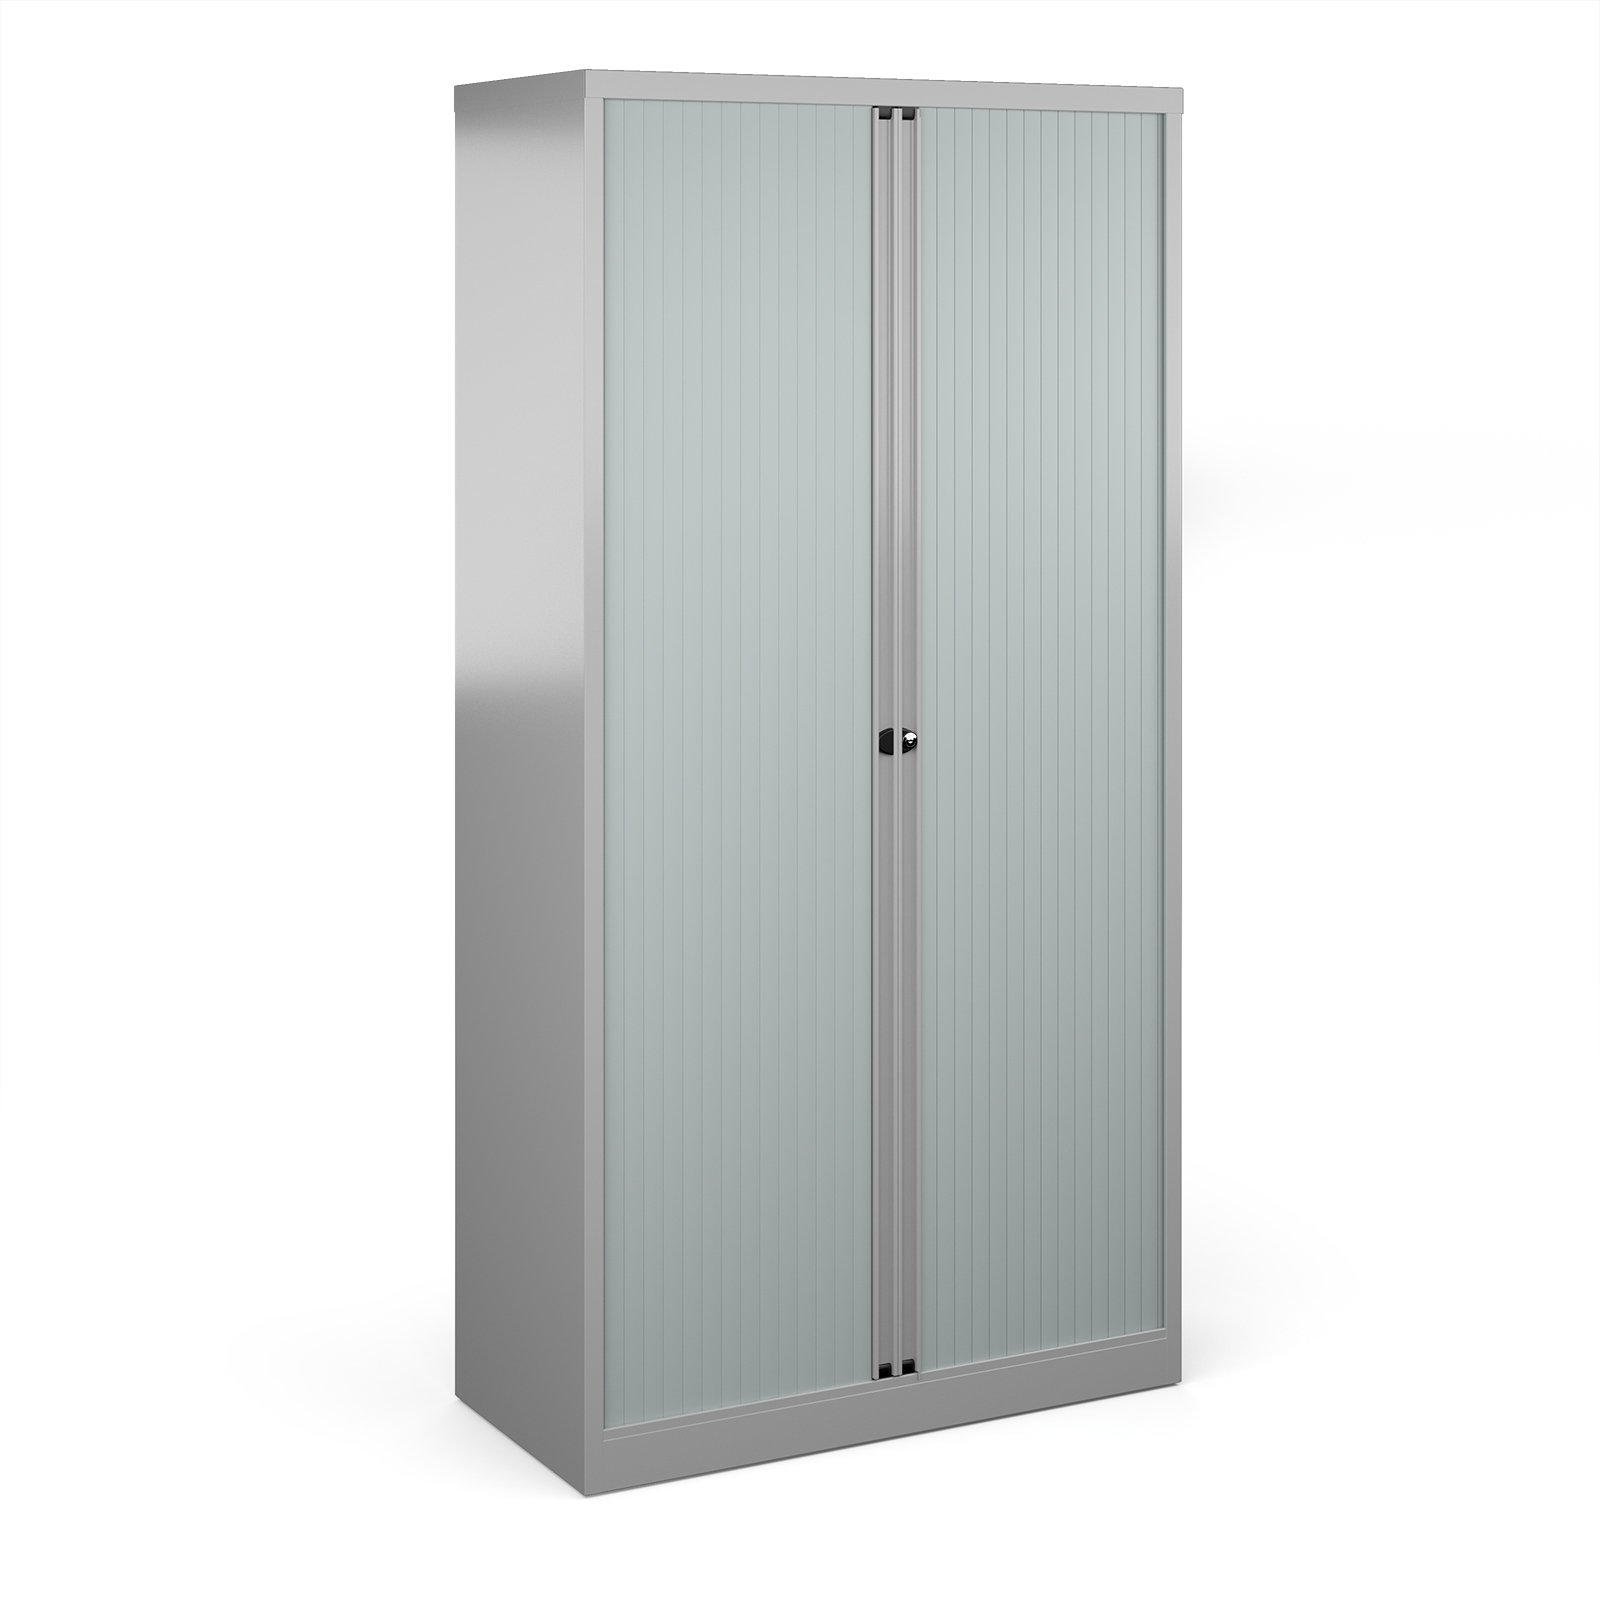 Over 1200mm High Bisley systems storage high tambour cupboard 1970mm high - silver